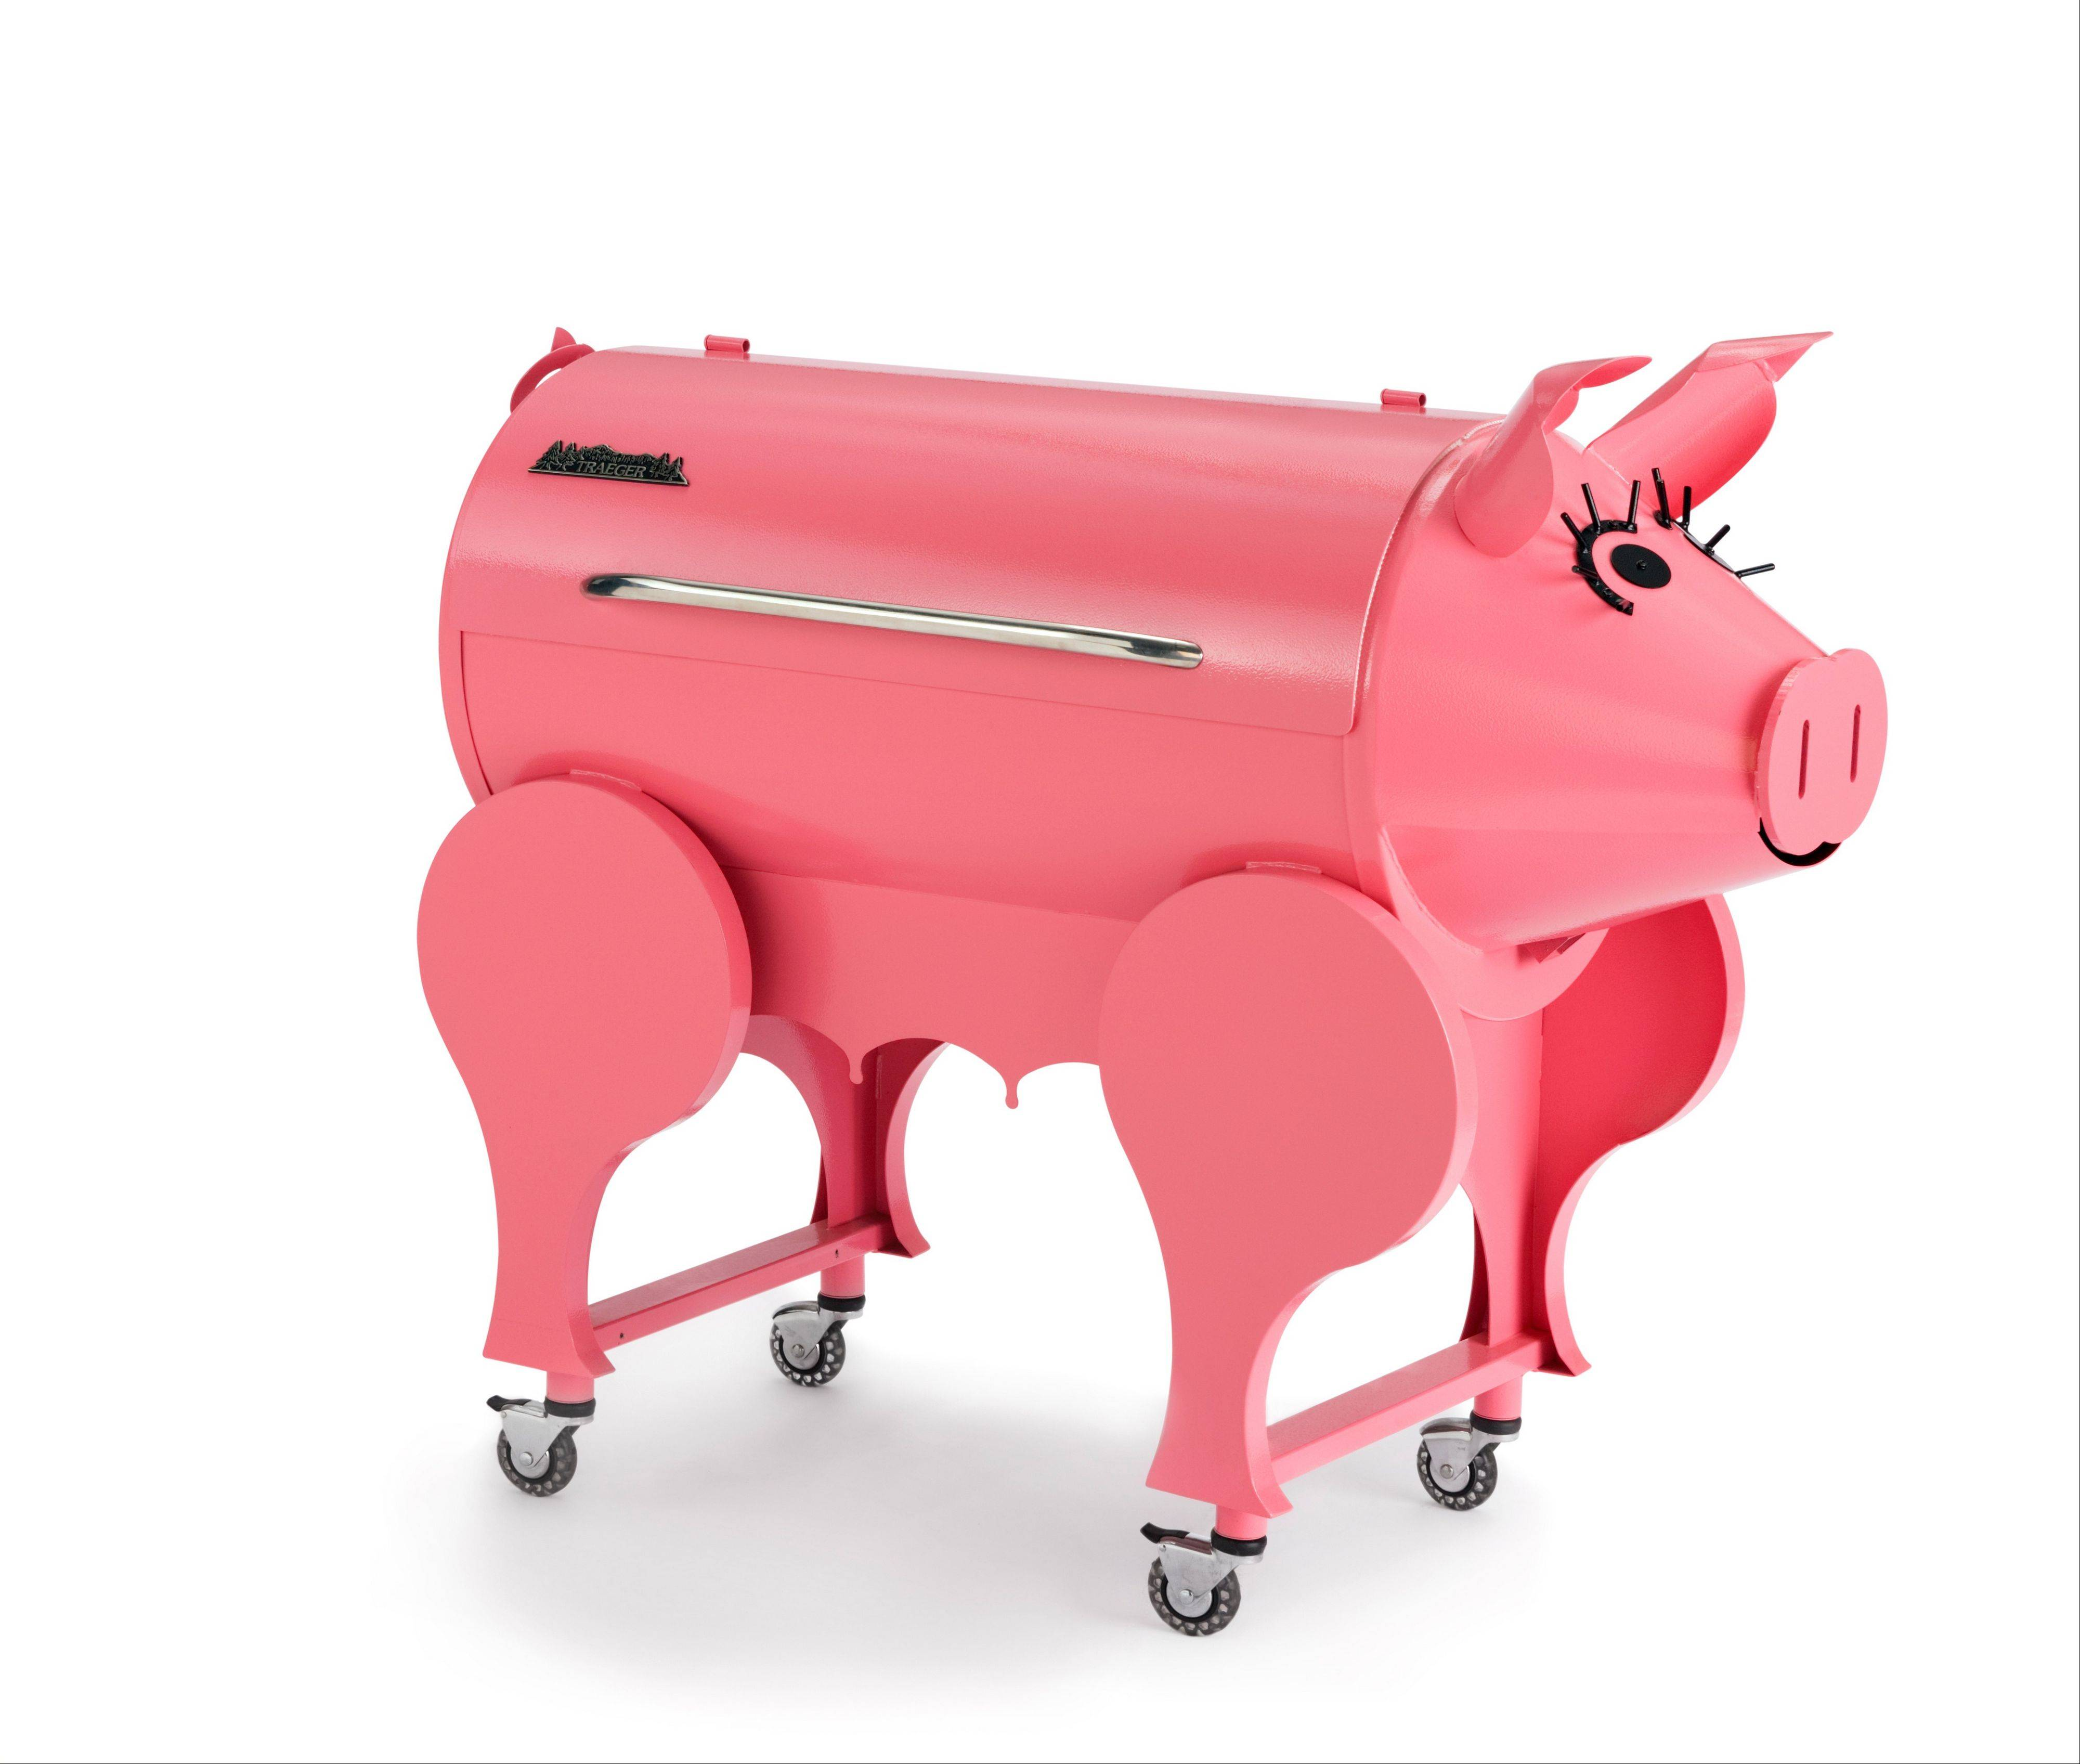 The Pink Pig Pellet Grill is truly a fun way to cook.